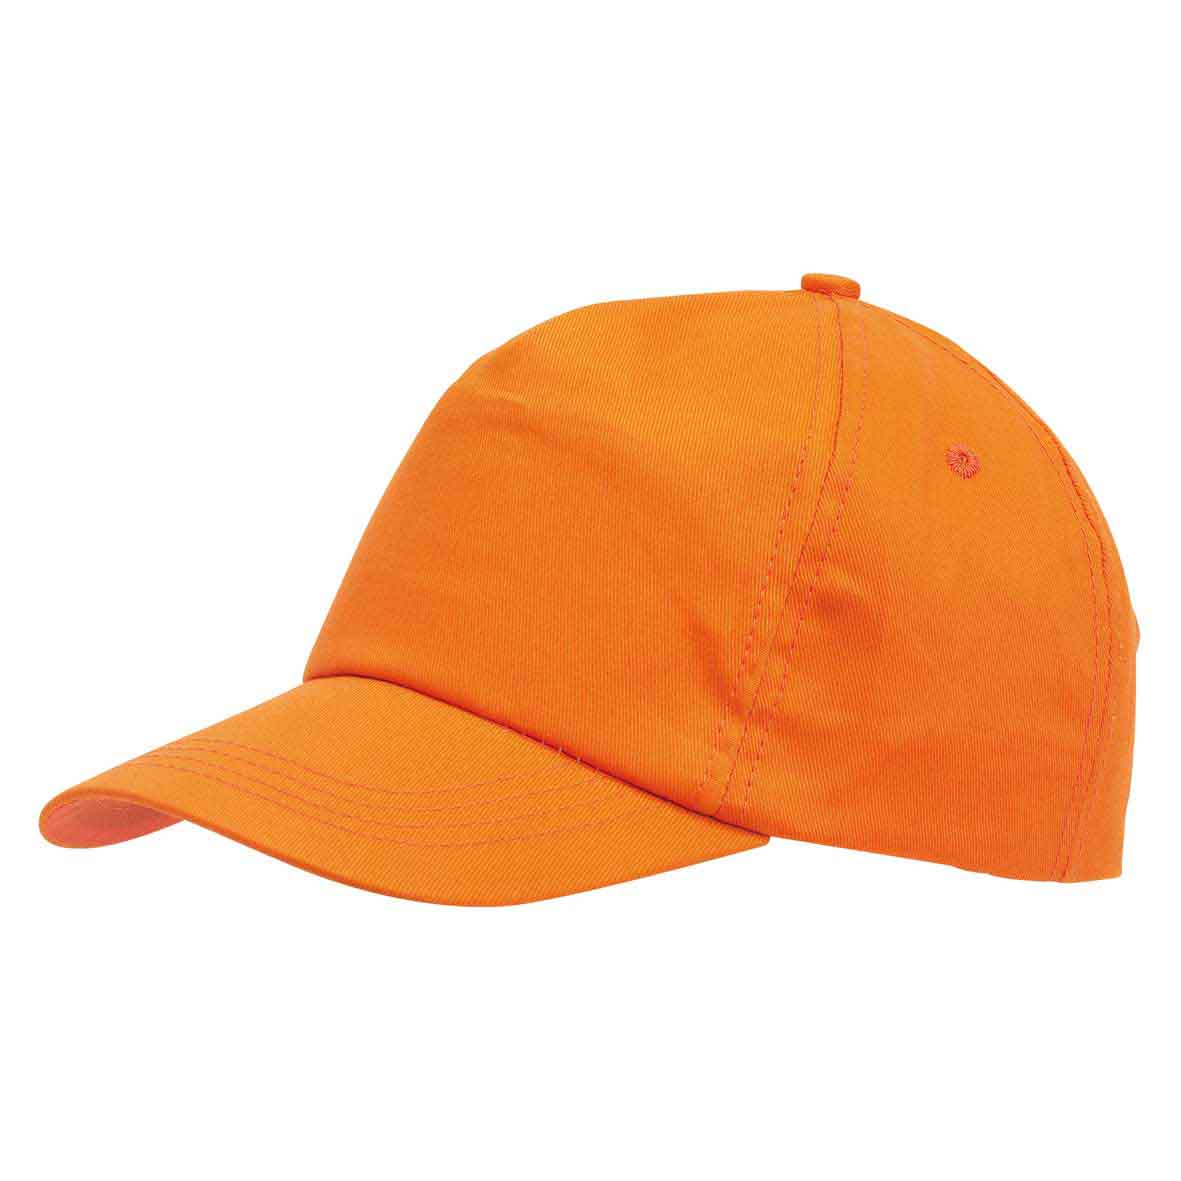 5 panel cap 'Favourite' - Orange ins-0702058